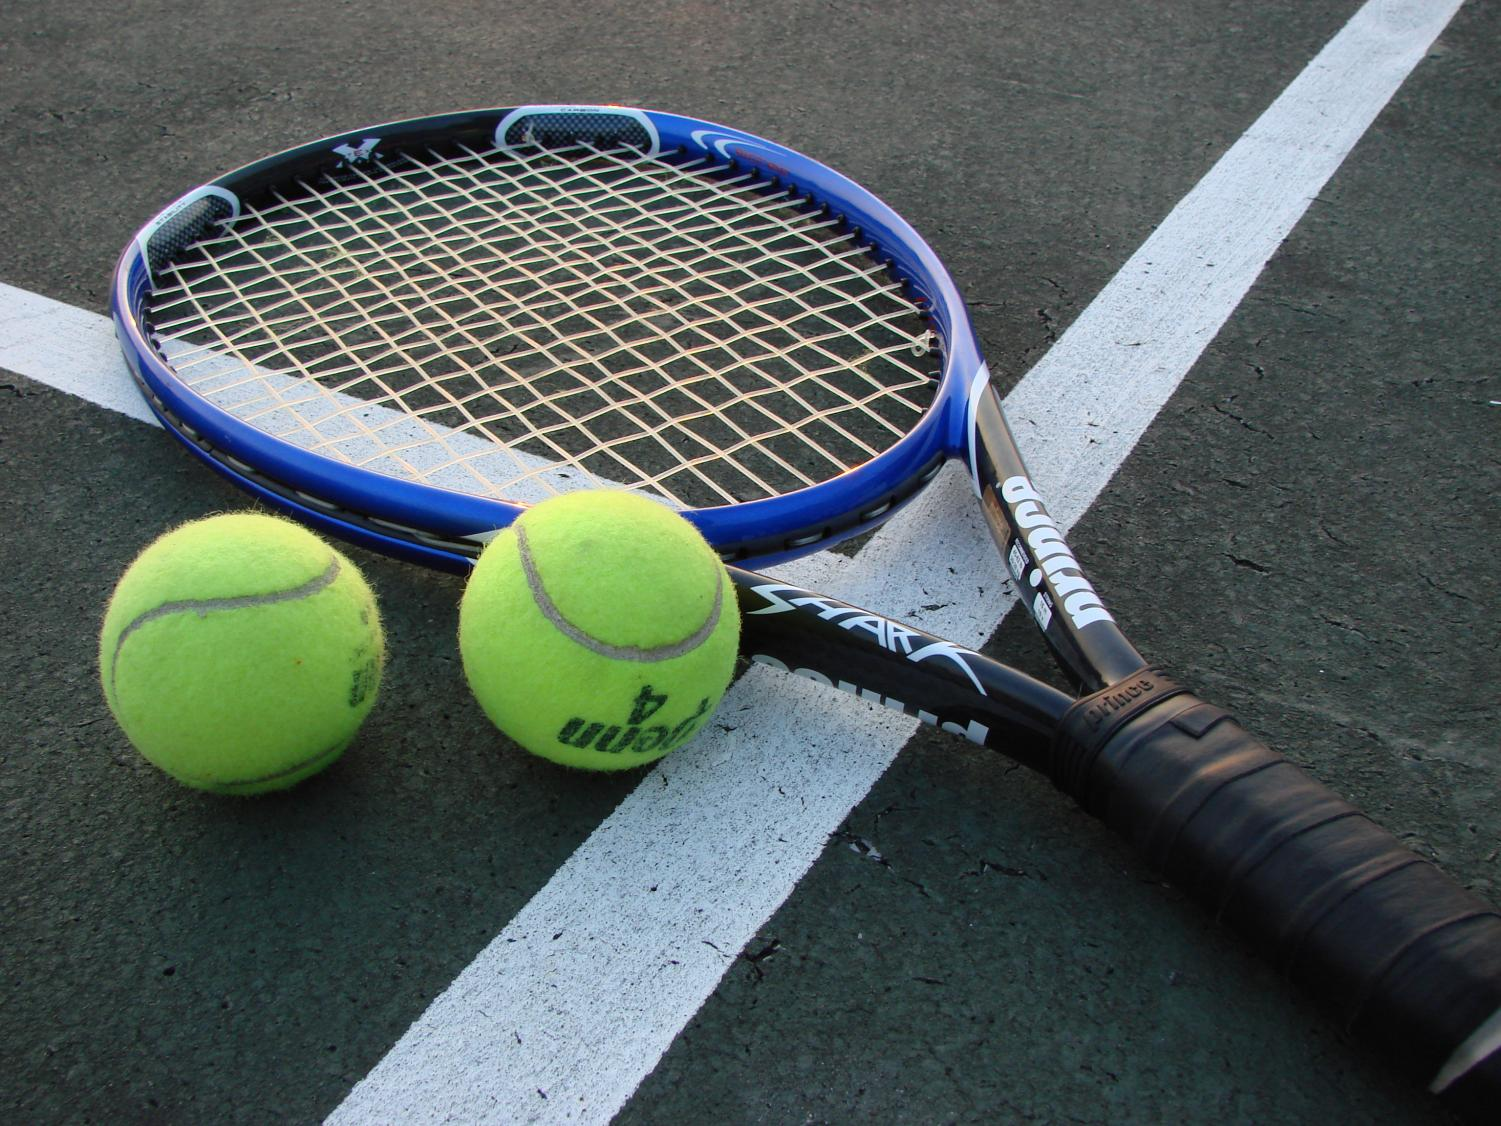 Preseason for fall sports such as tennis begins as early as July.